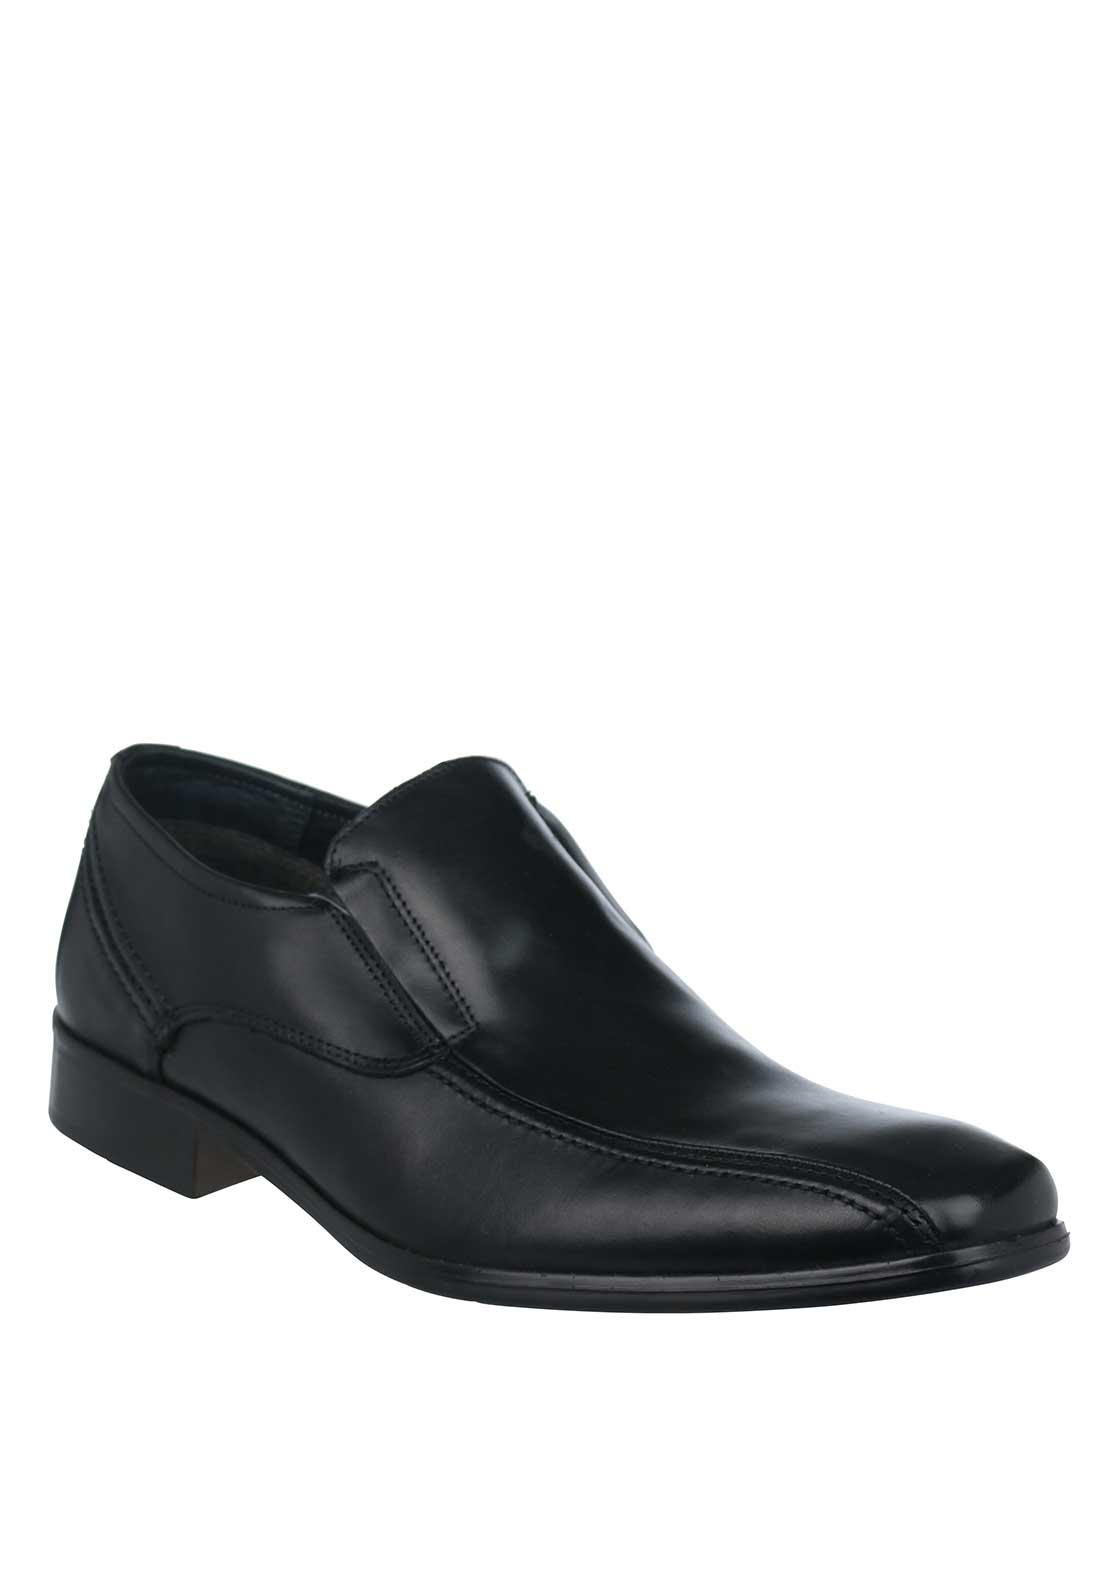 Dubarry Mens Deegan Slip On Leather Shoe, Black